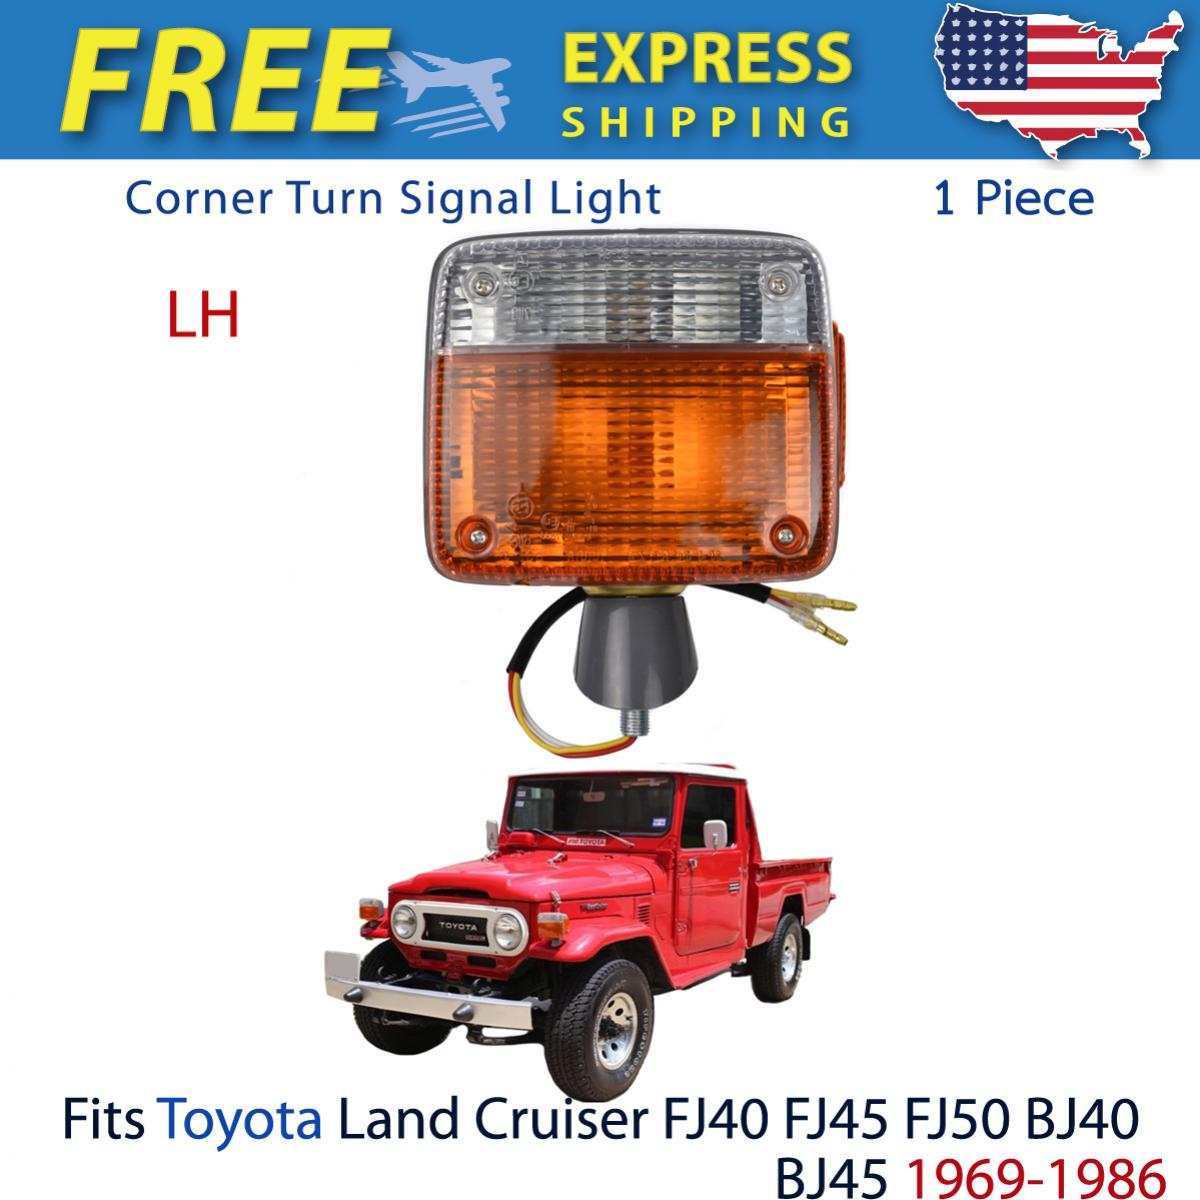 コーナーライト Left Corner Turn Signal Light Lamp Fits Toyota Land Cruiser FJ40 BJ40 1869-1986 トヨタランドクルーザーFJ40 BJ40 1869-1986